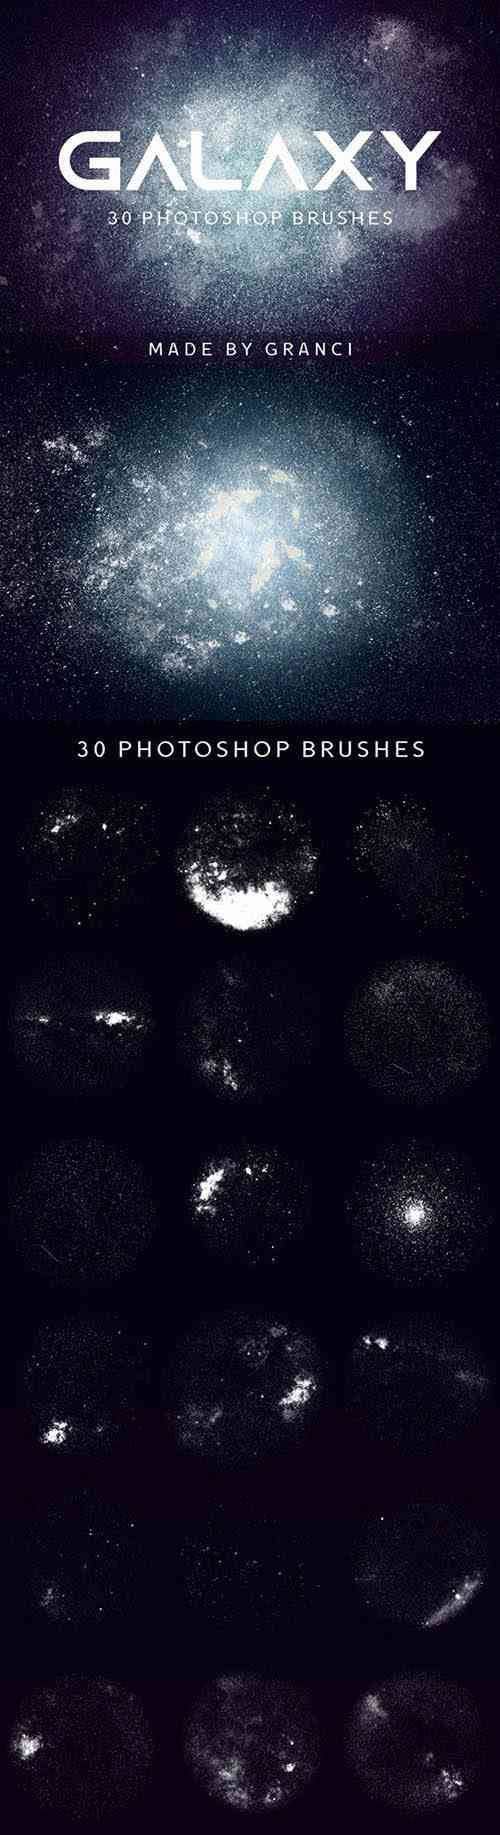 Galaxy Photoshop Brushes 25652362